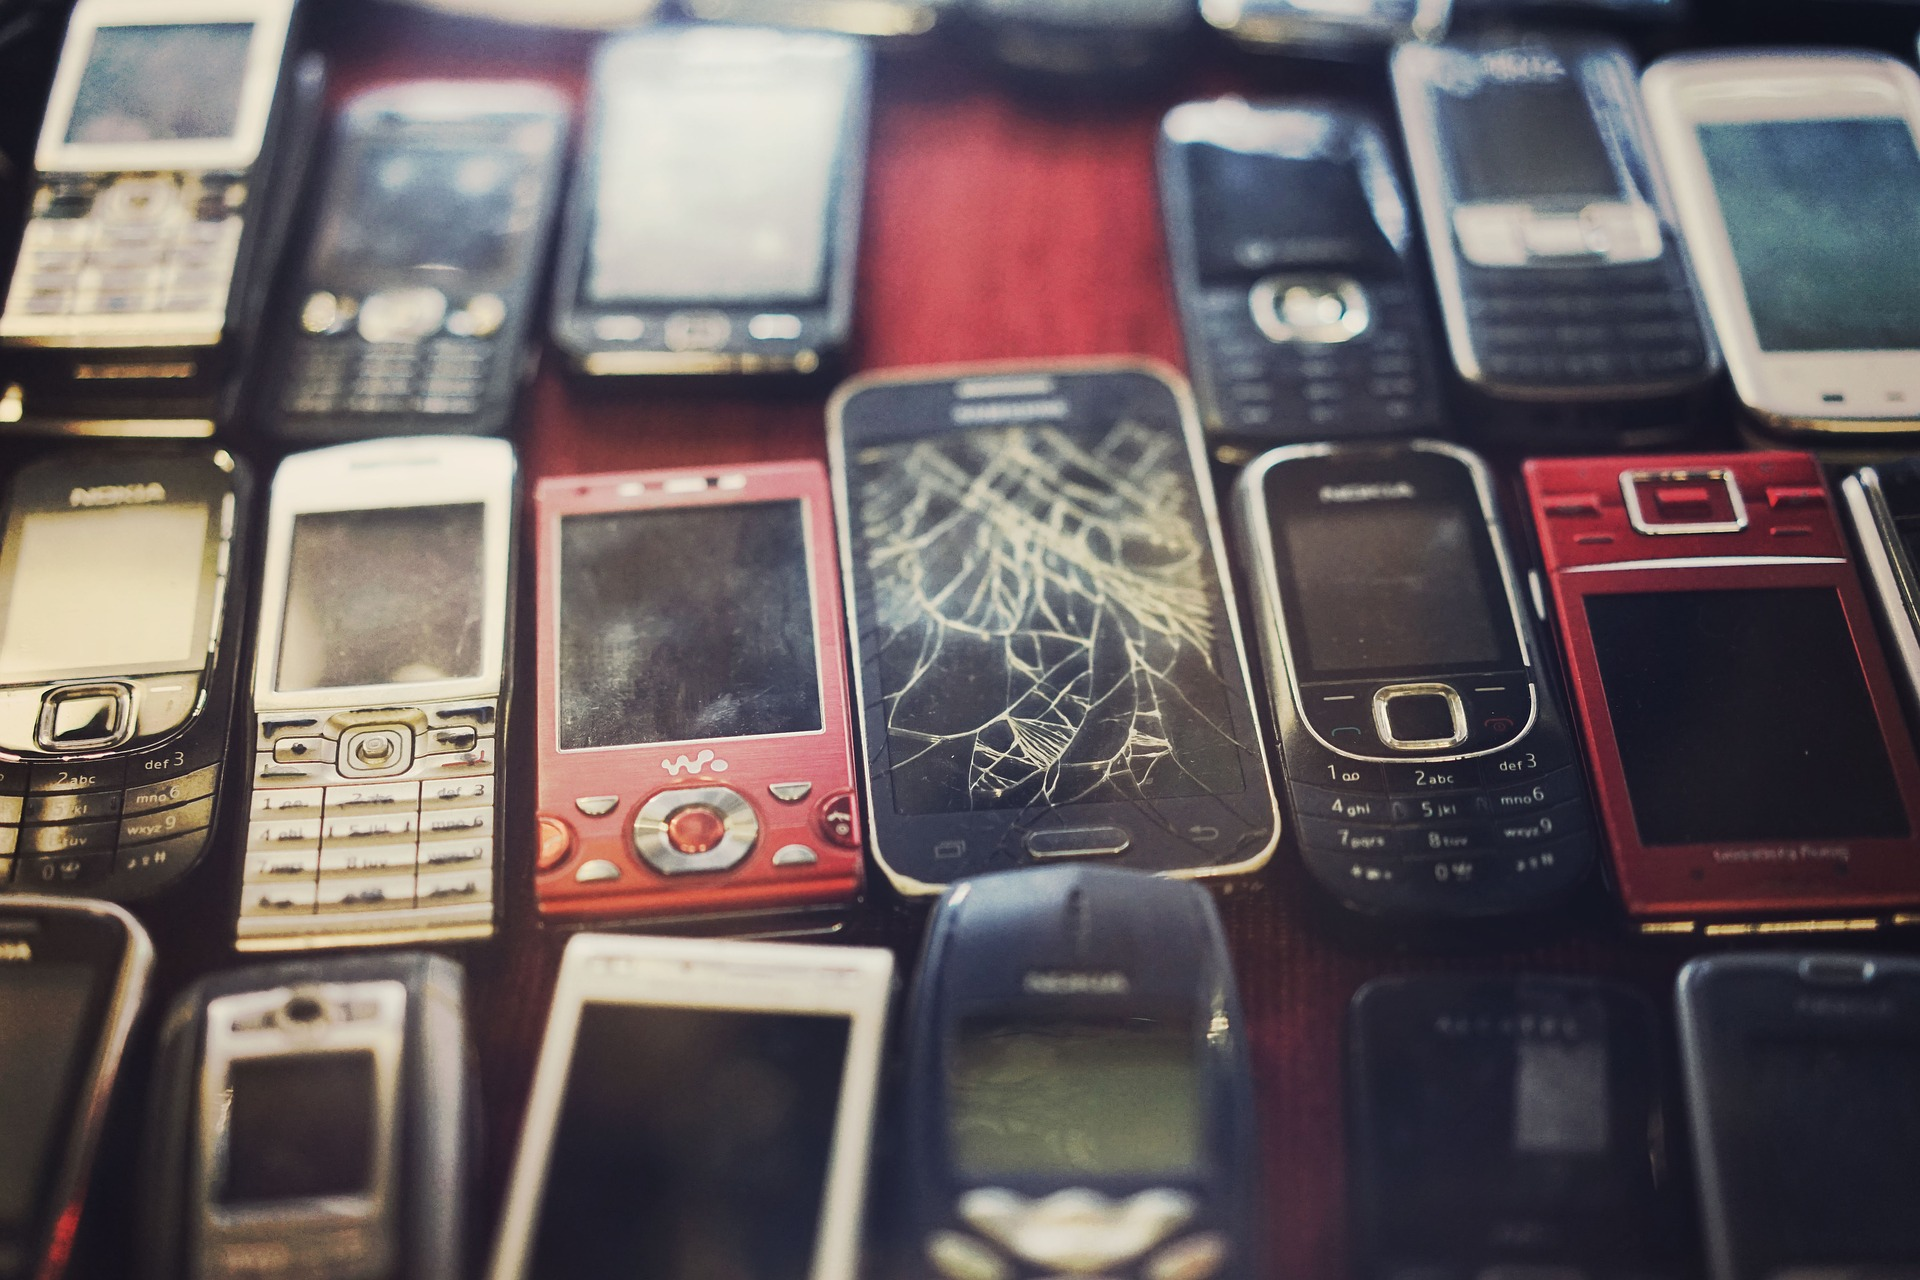 Ewaste | Recycling old technology